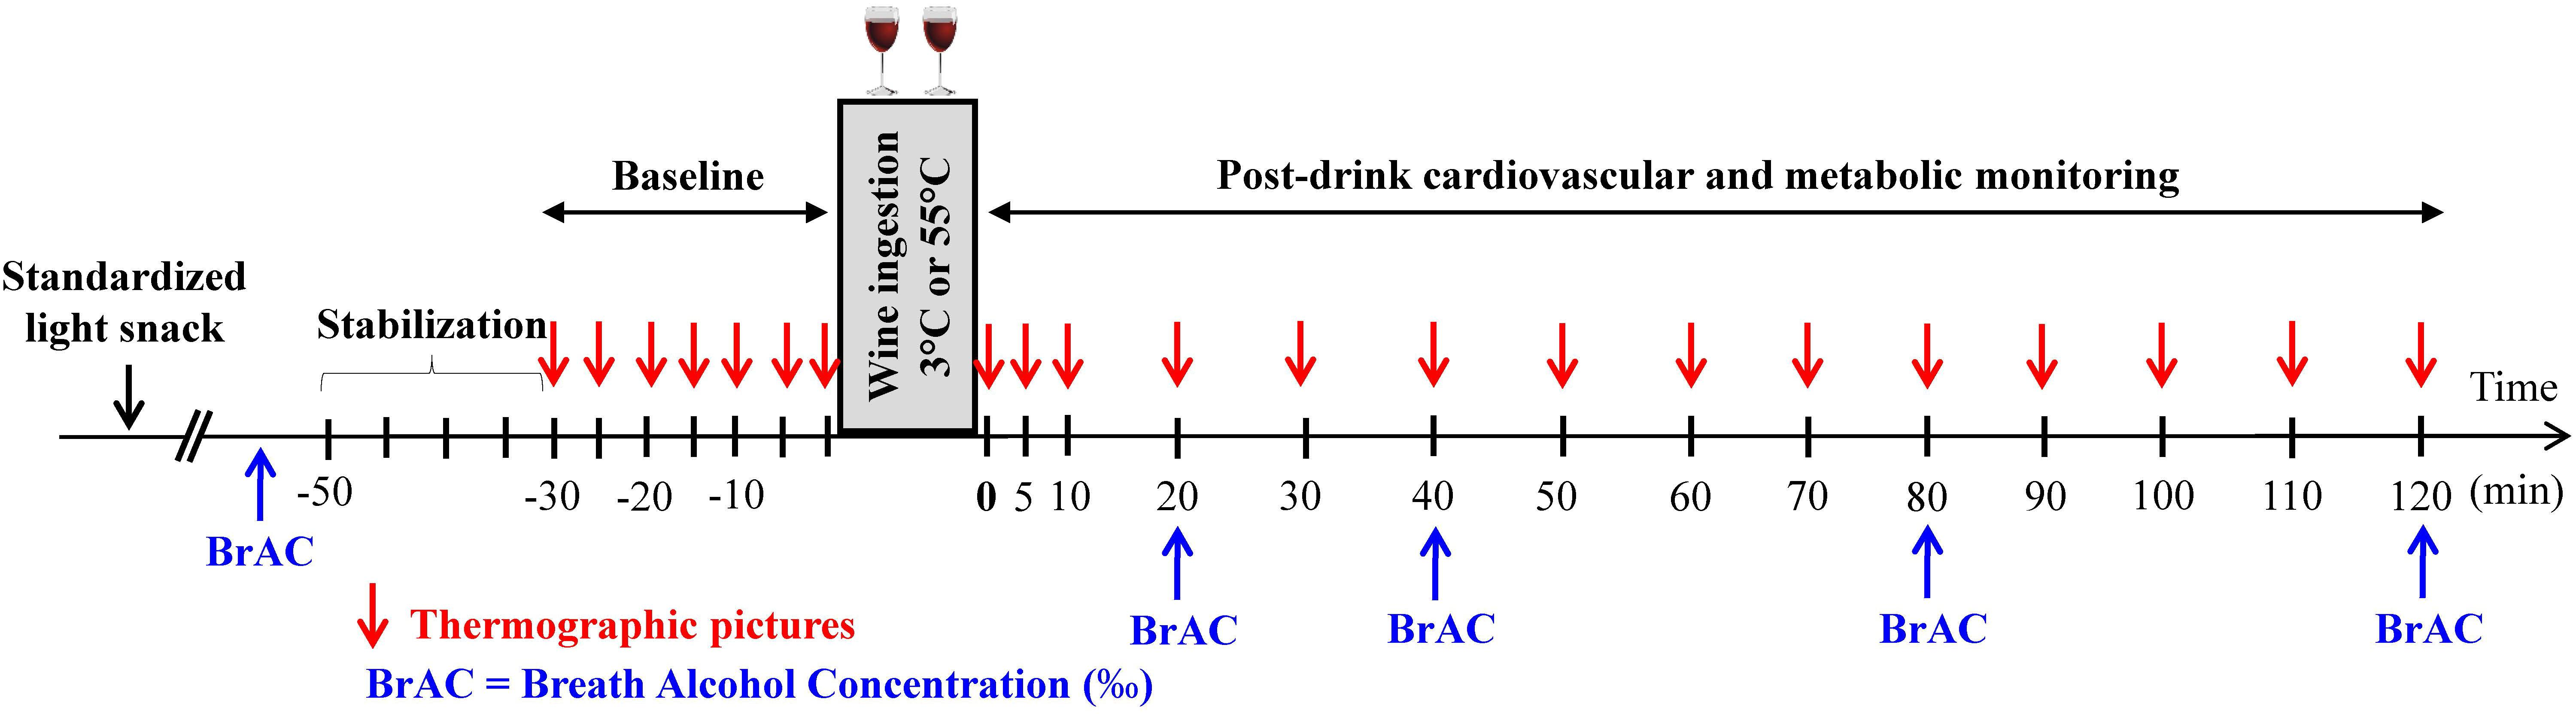 Frontiers   Early and Late Cardiovascular and Metabolic Responses to